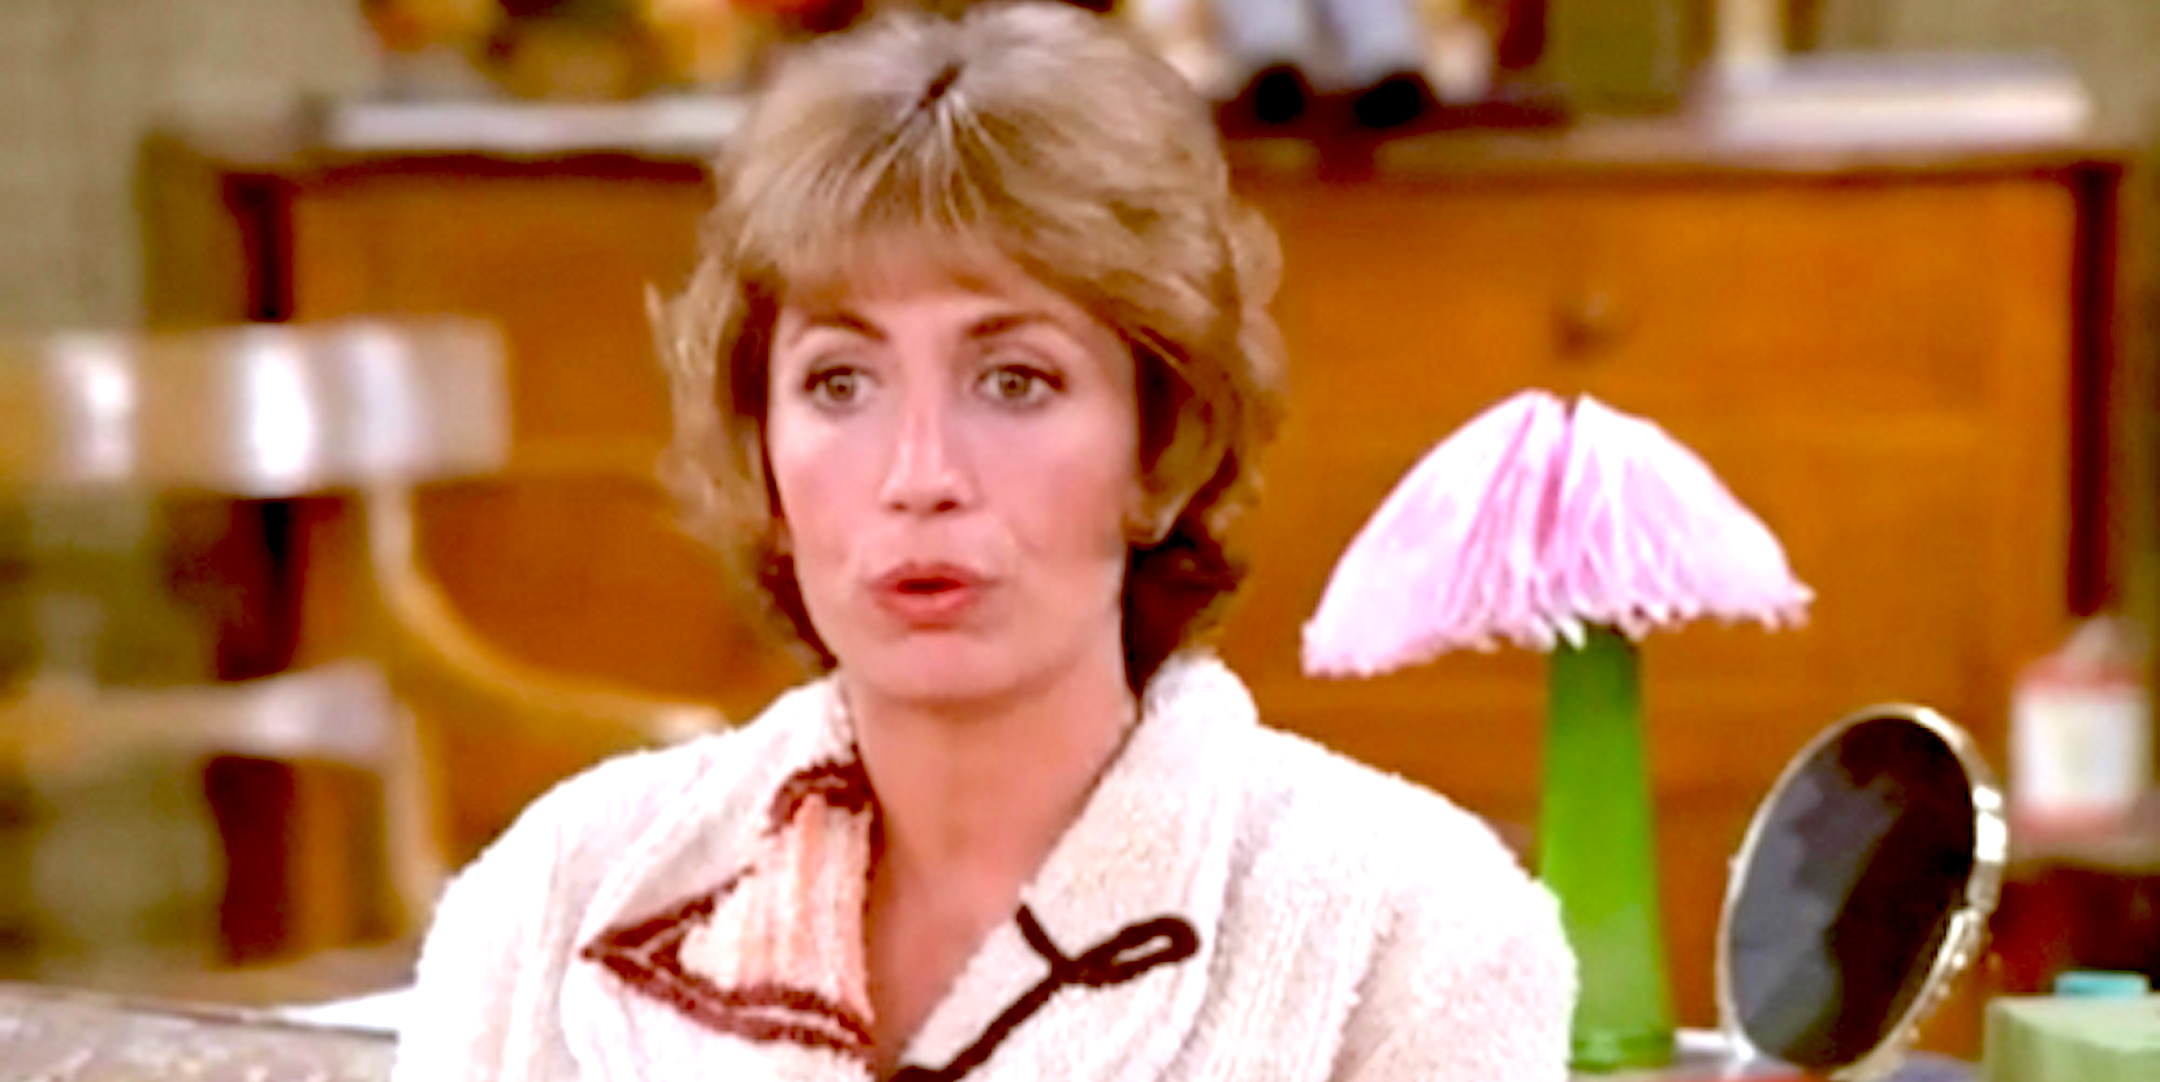 tv, Laverne and Shirley, penny marshall as laverne, 70s, 80s, AMC